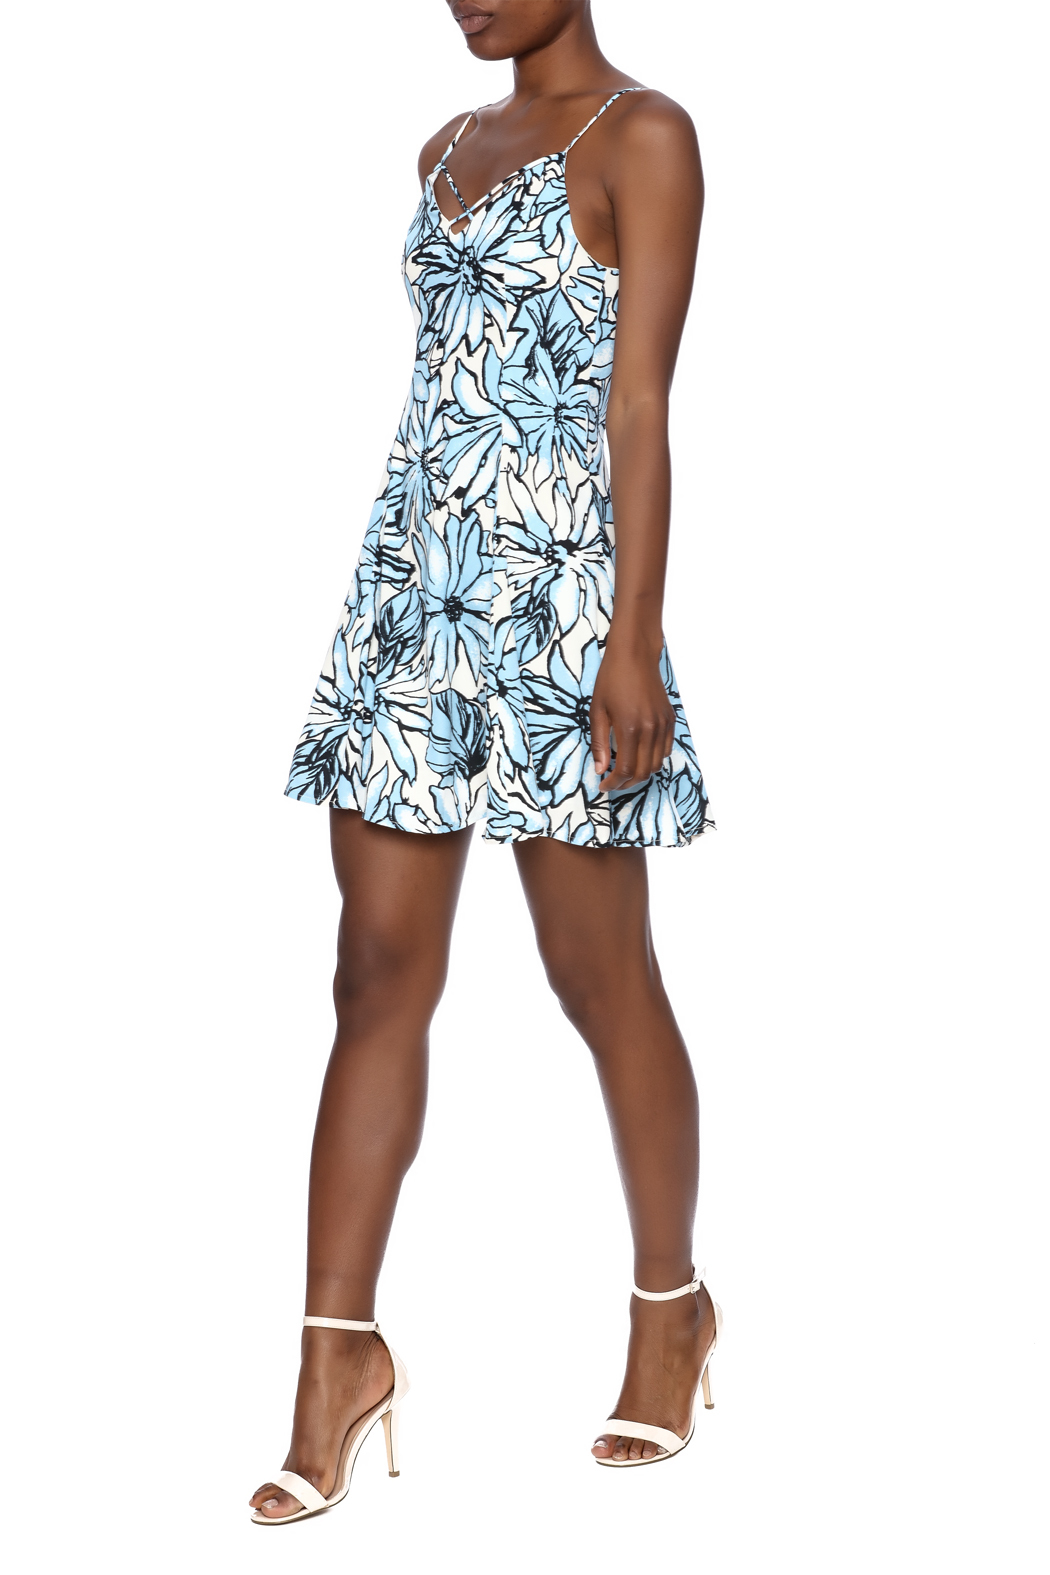 Alythea Floral Lace-Up Dress - Front Full Image